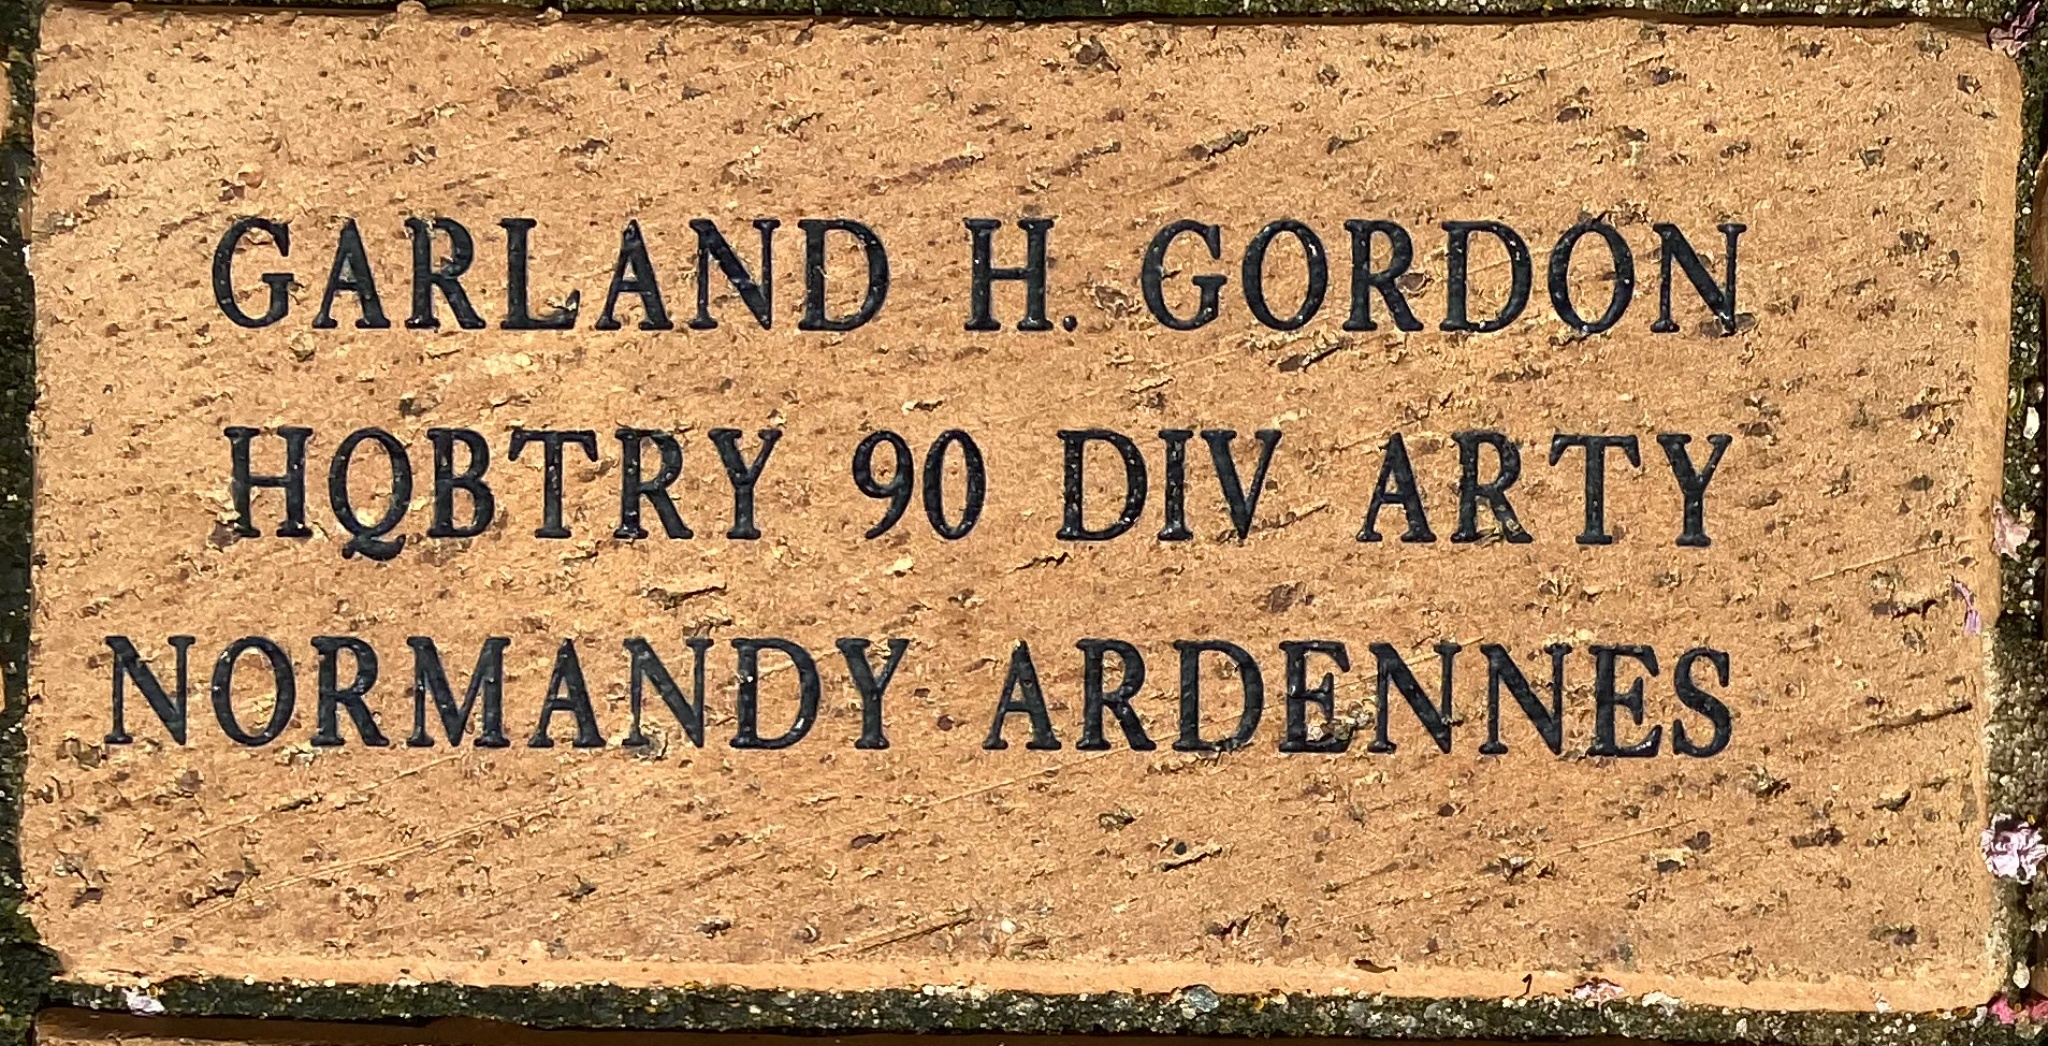 GARLAND H. GORDON HQBTRY 90 DIV ARTY NORMANDY ARDENNES